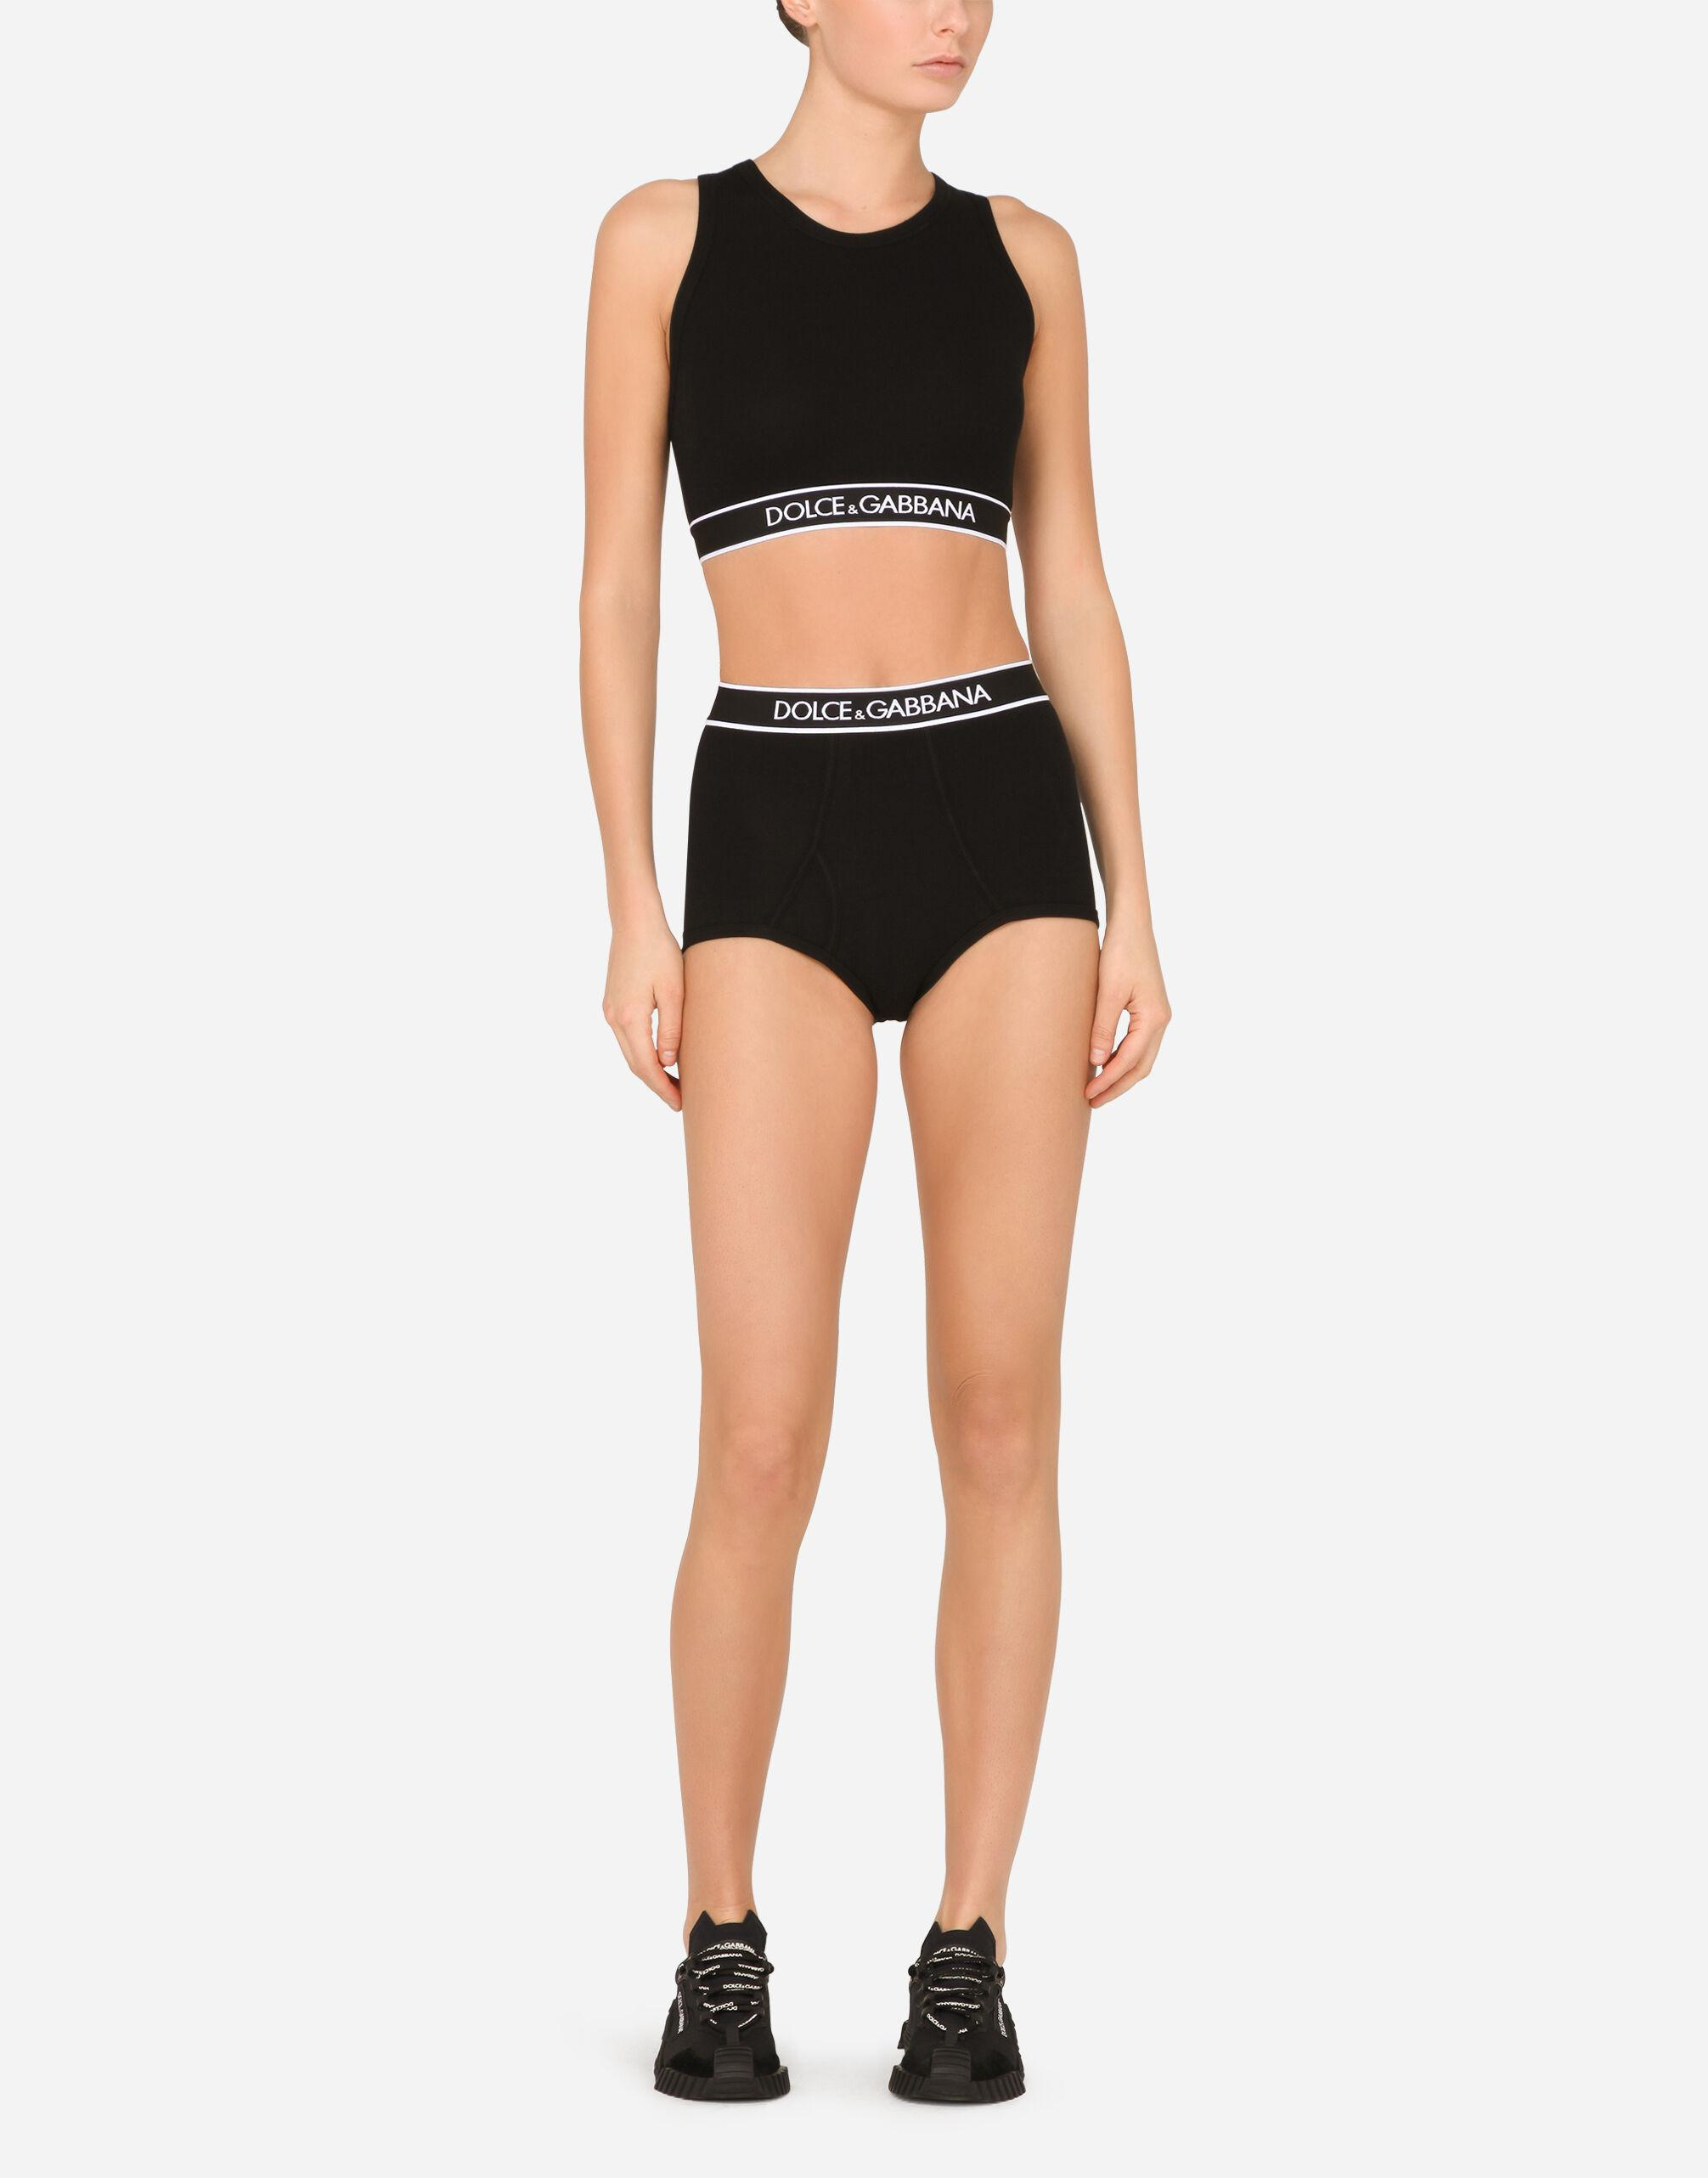 Fine-rib jersey high-waisted panties with branded elastic